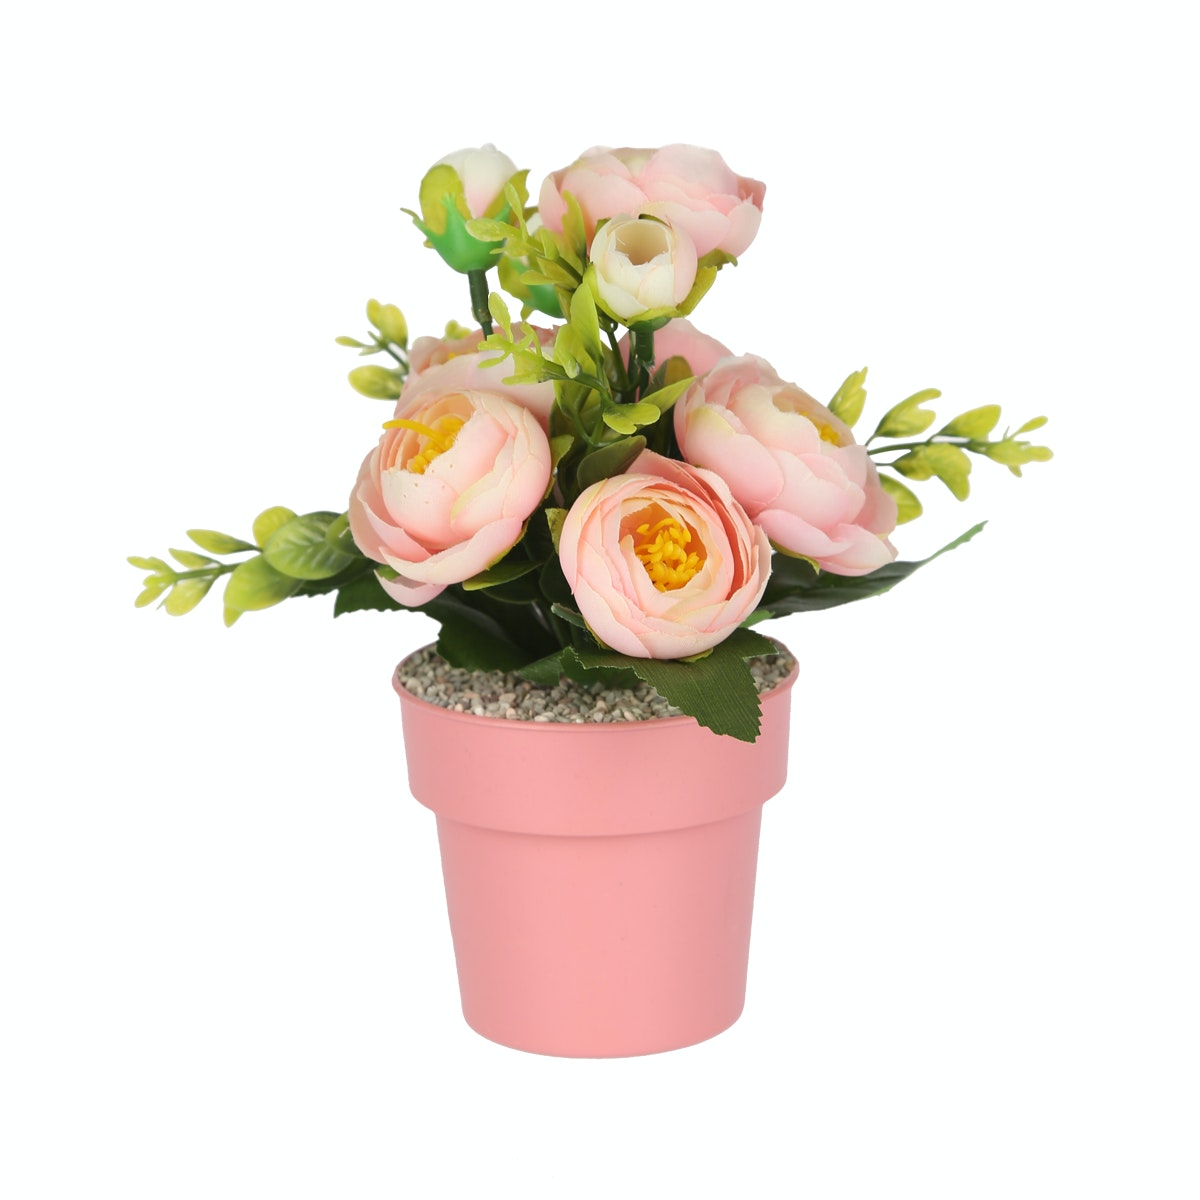 Kokoji Florist Flower Arrangements KKJ-11 PEACH